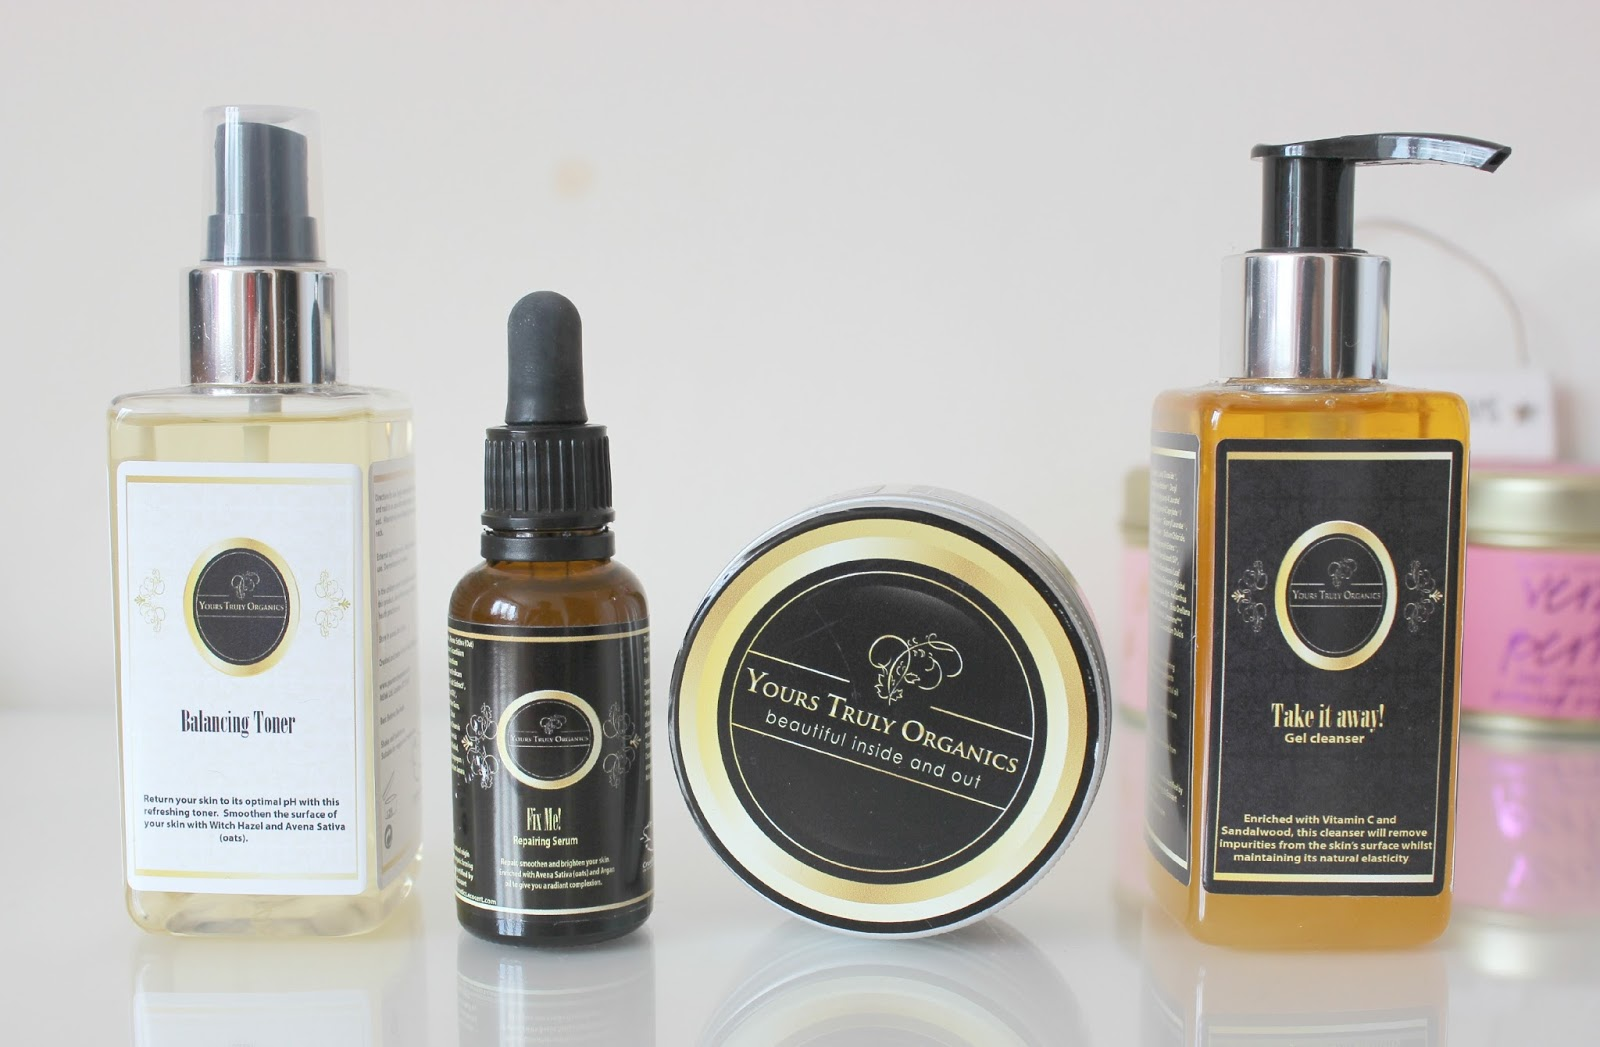 A picture of Yours Truly Organics Skincare